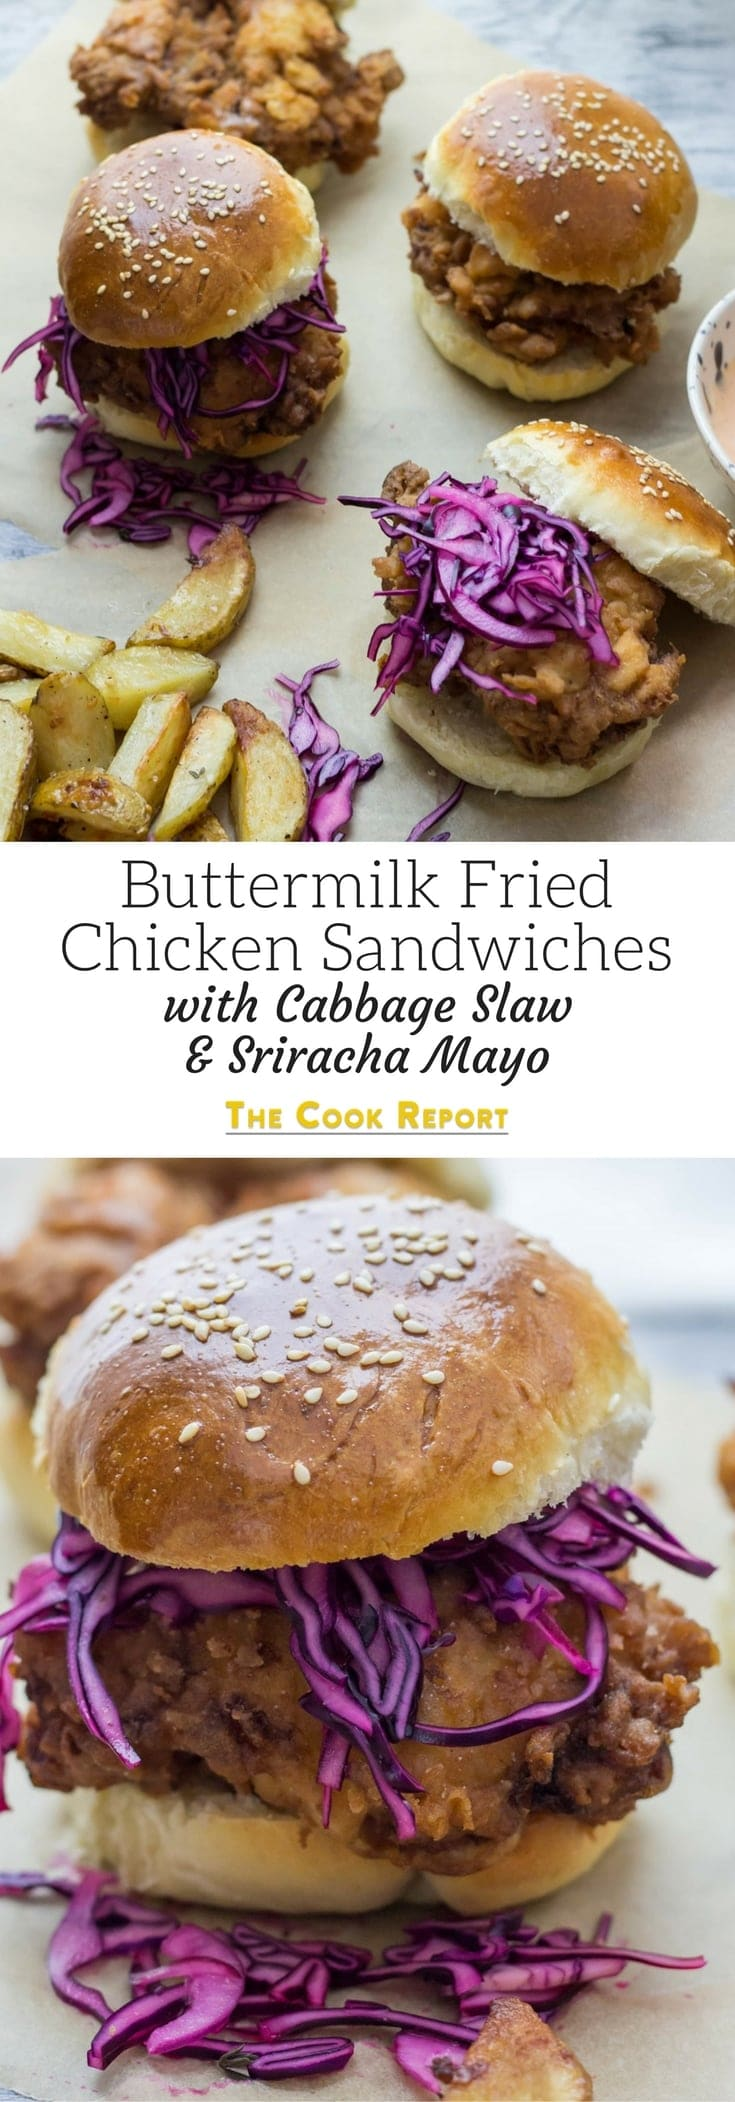 Oh man, fried chicken is just the best isn't it? Especially these buttermilk fried chicken sandwiches with cabbage slaw and sriracha mayo!